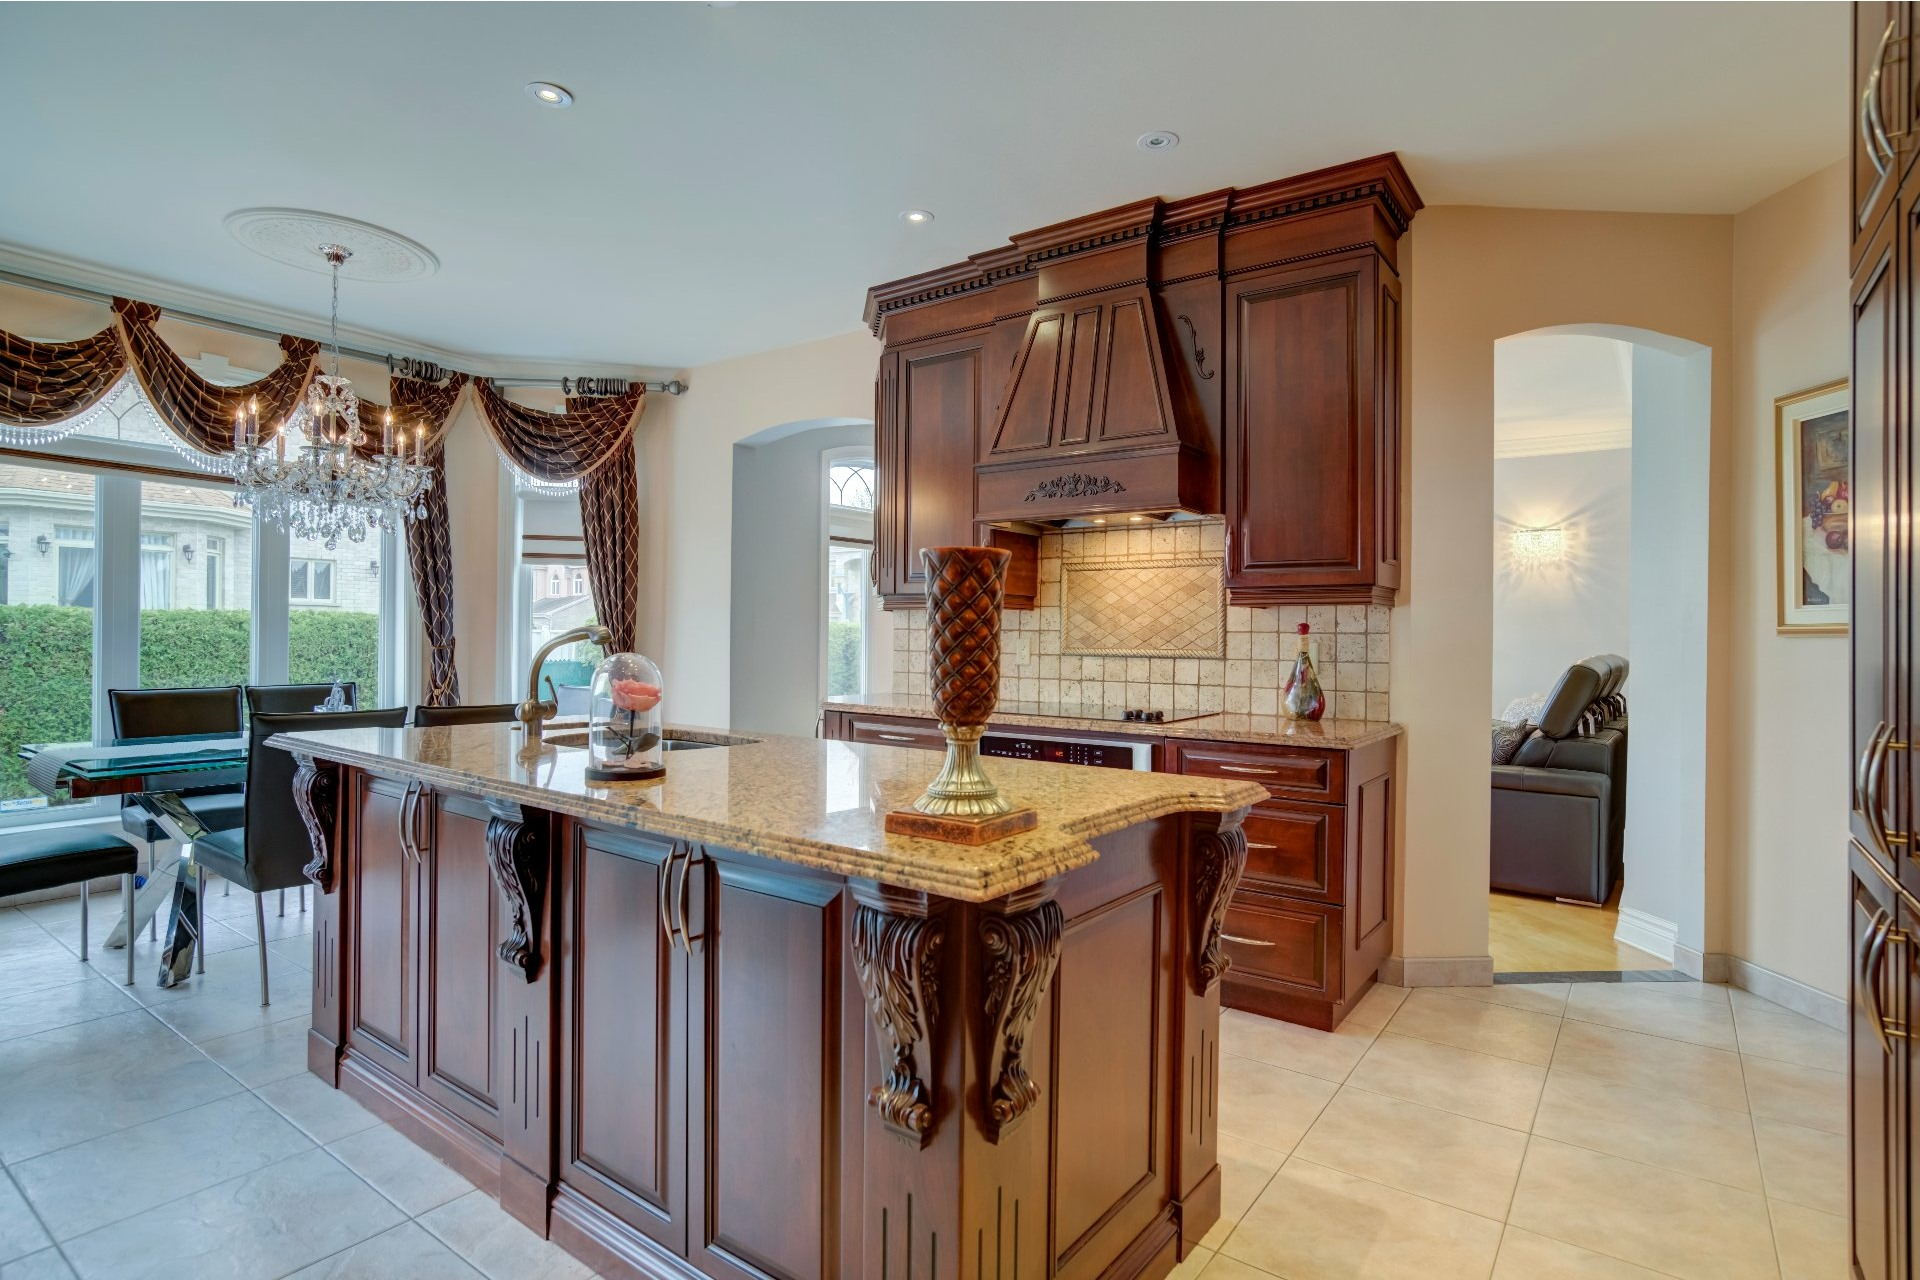 image 6 - House For sale Duvernay Laval  - 13 rooms